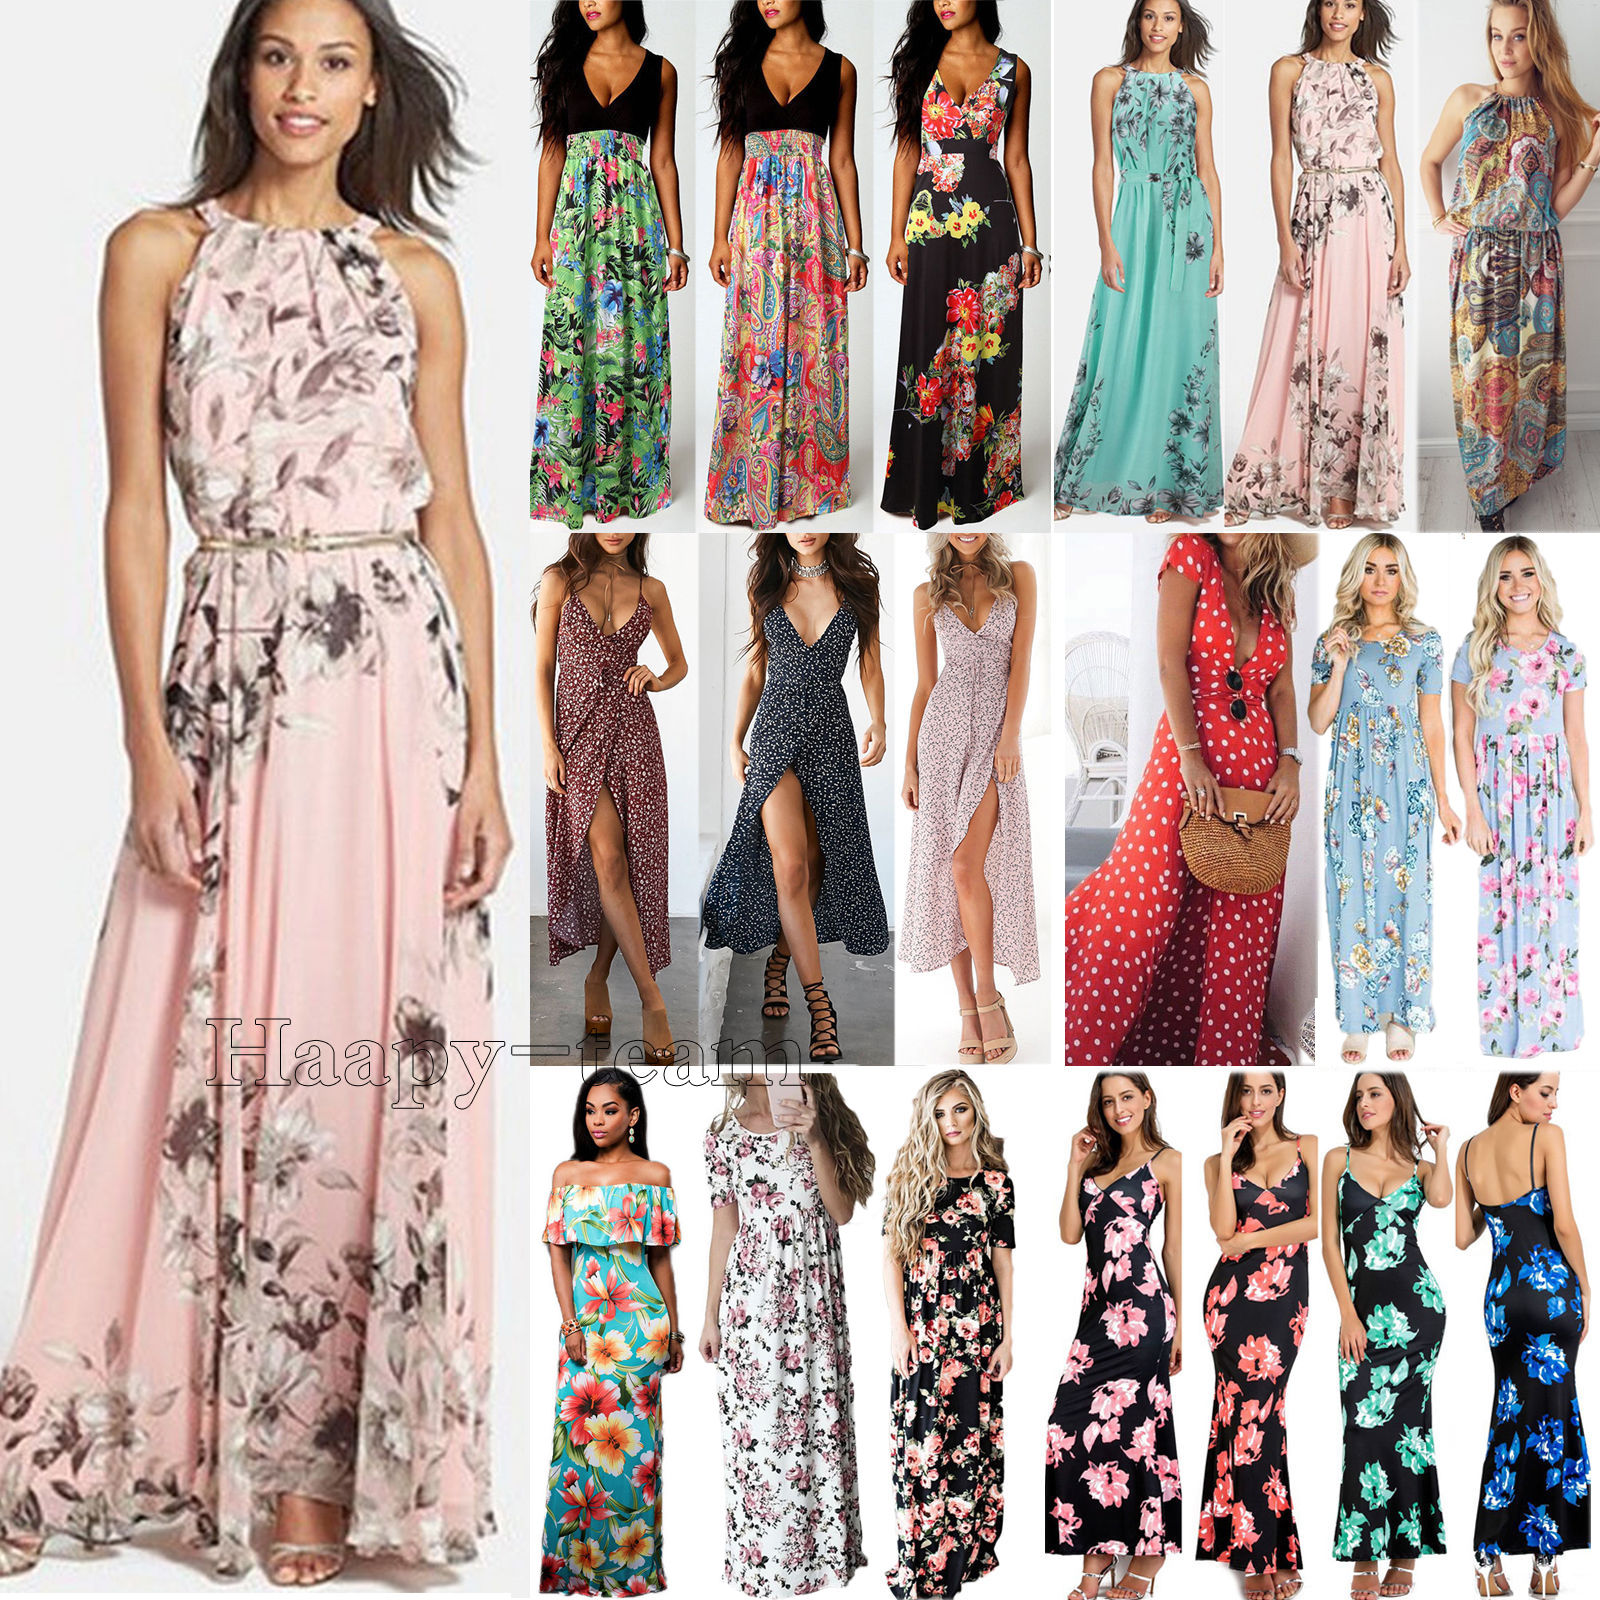 e84dce4e7955 Womens Boho Floral Long Maxi Dress Cocktail Party Evening Summer Beach  Sundress